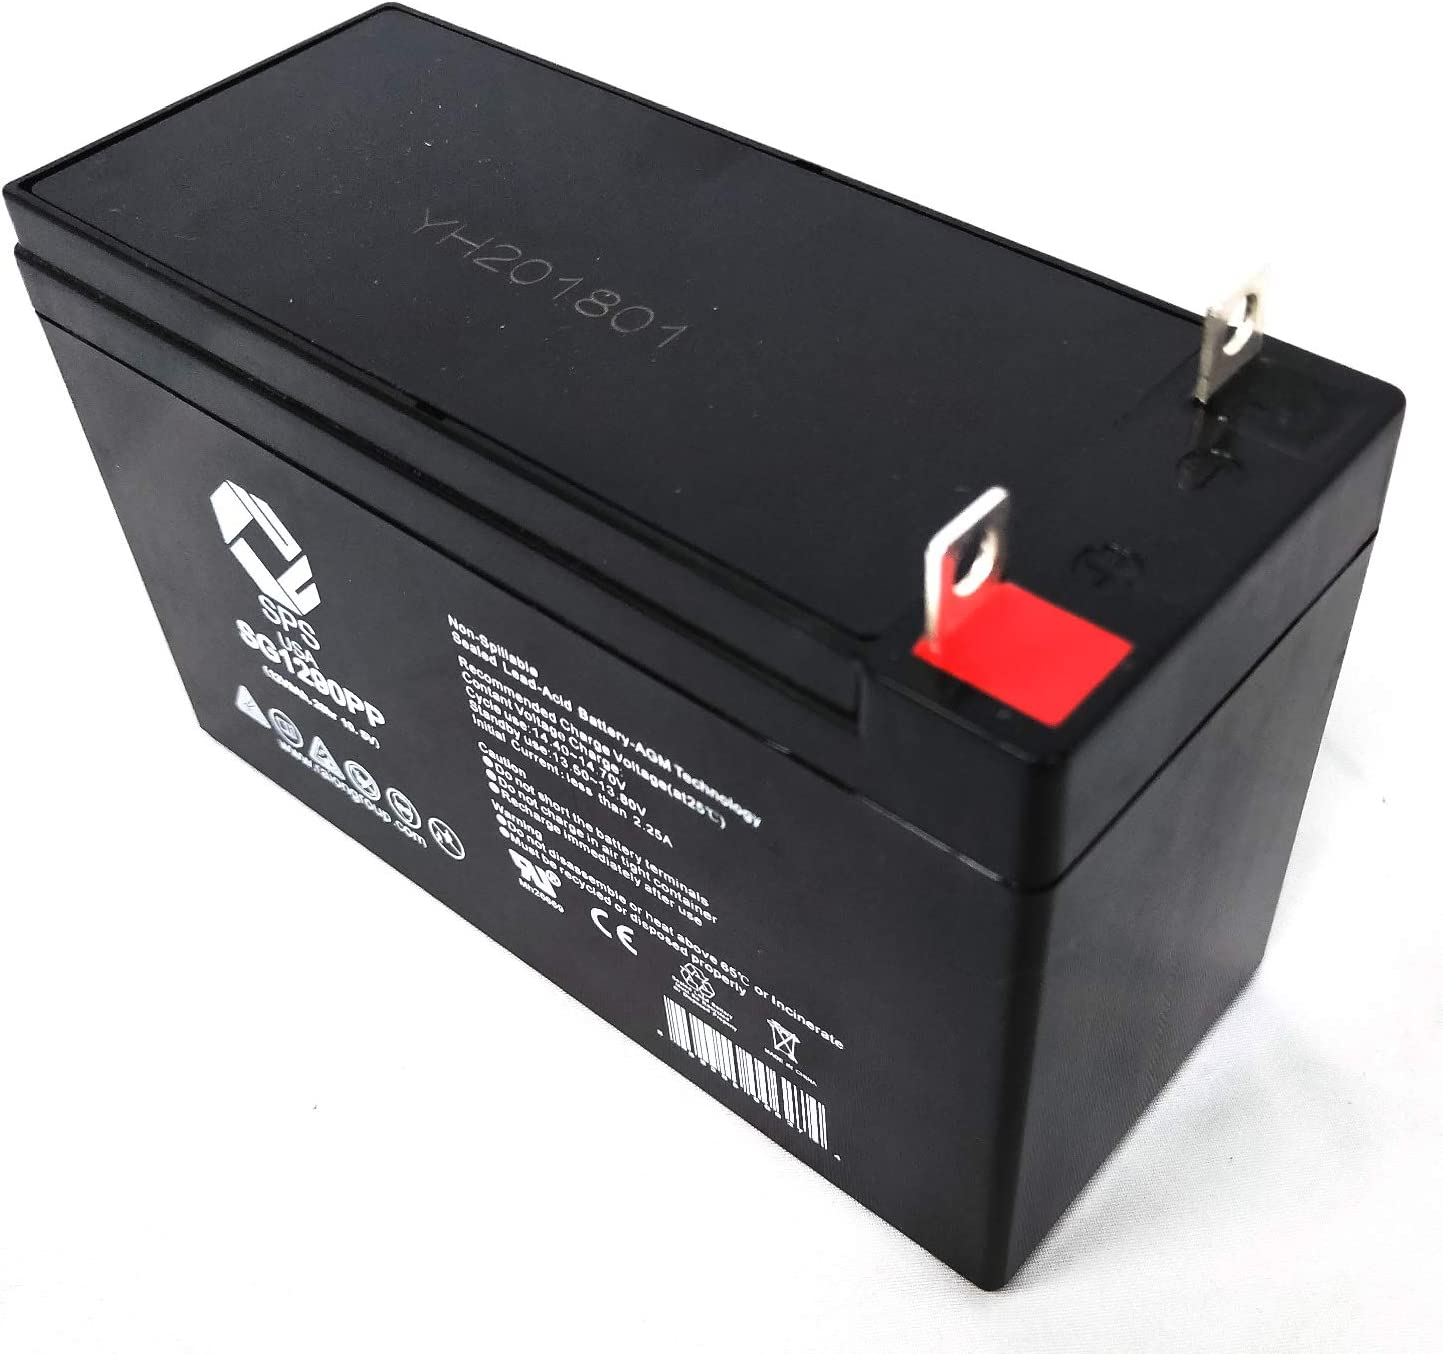 SPS Brand 12V 9Ah Replacement Battery for Wagan Tech 2467 300 Amp Pack 1